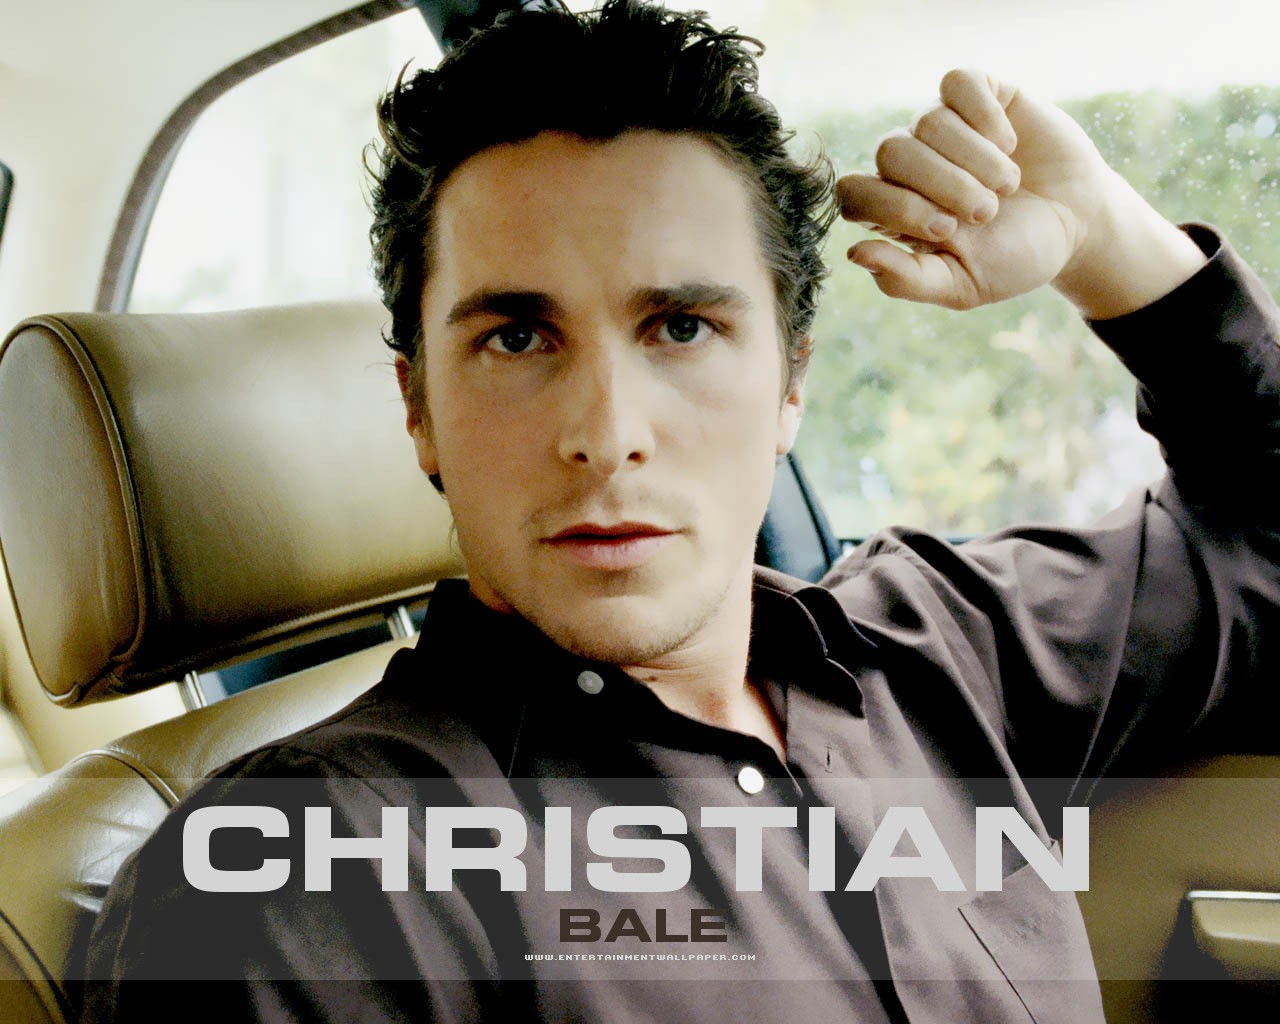 Christian Bale Wallpaper – 1280 x 1024 pixels – 198 kB